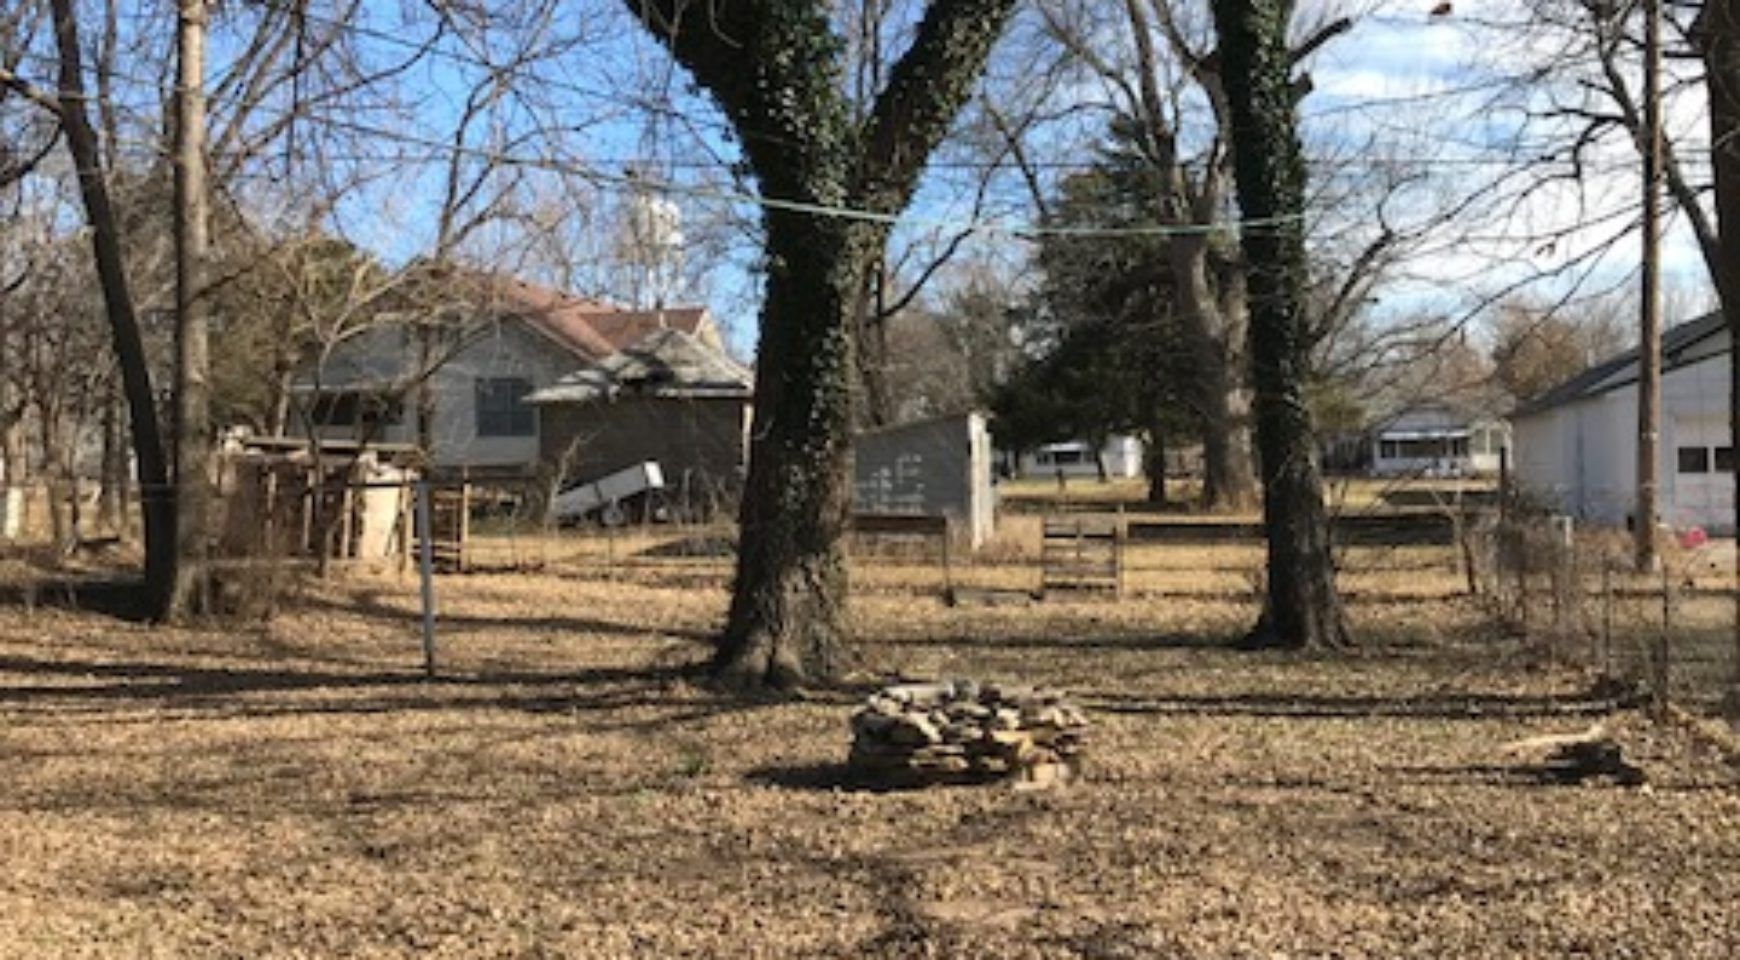 808 N Olive Leon Ks, City Owned Real Estate Liquidation - Sudduth Realty